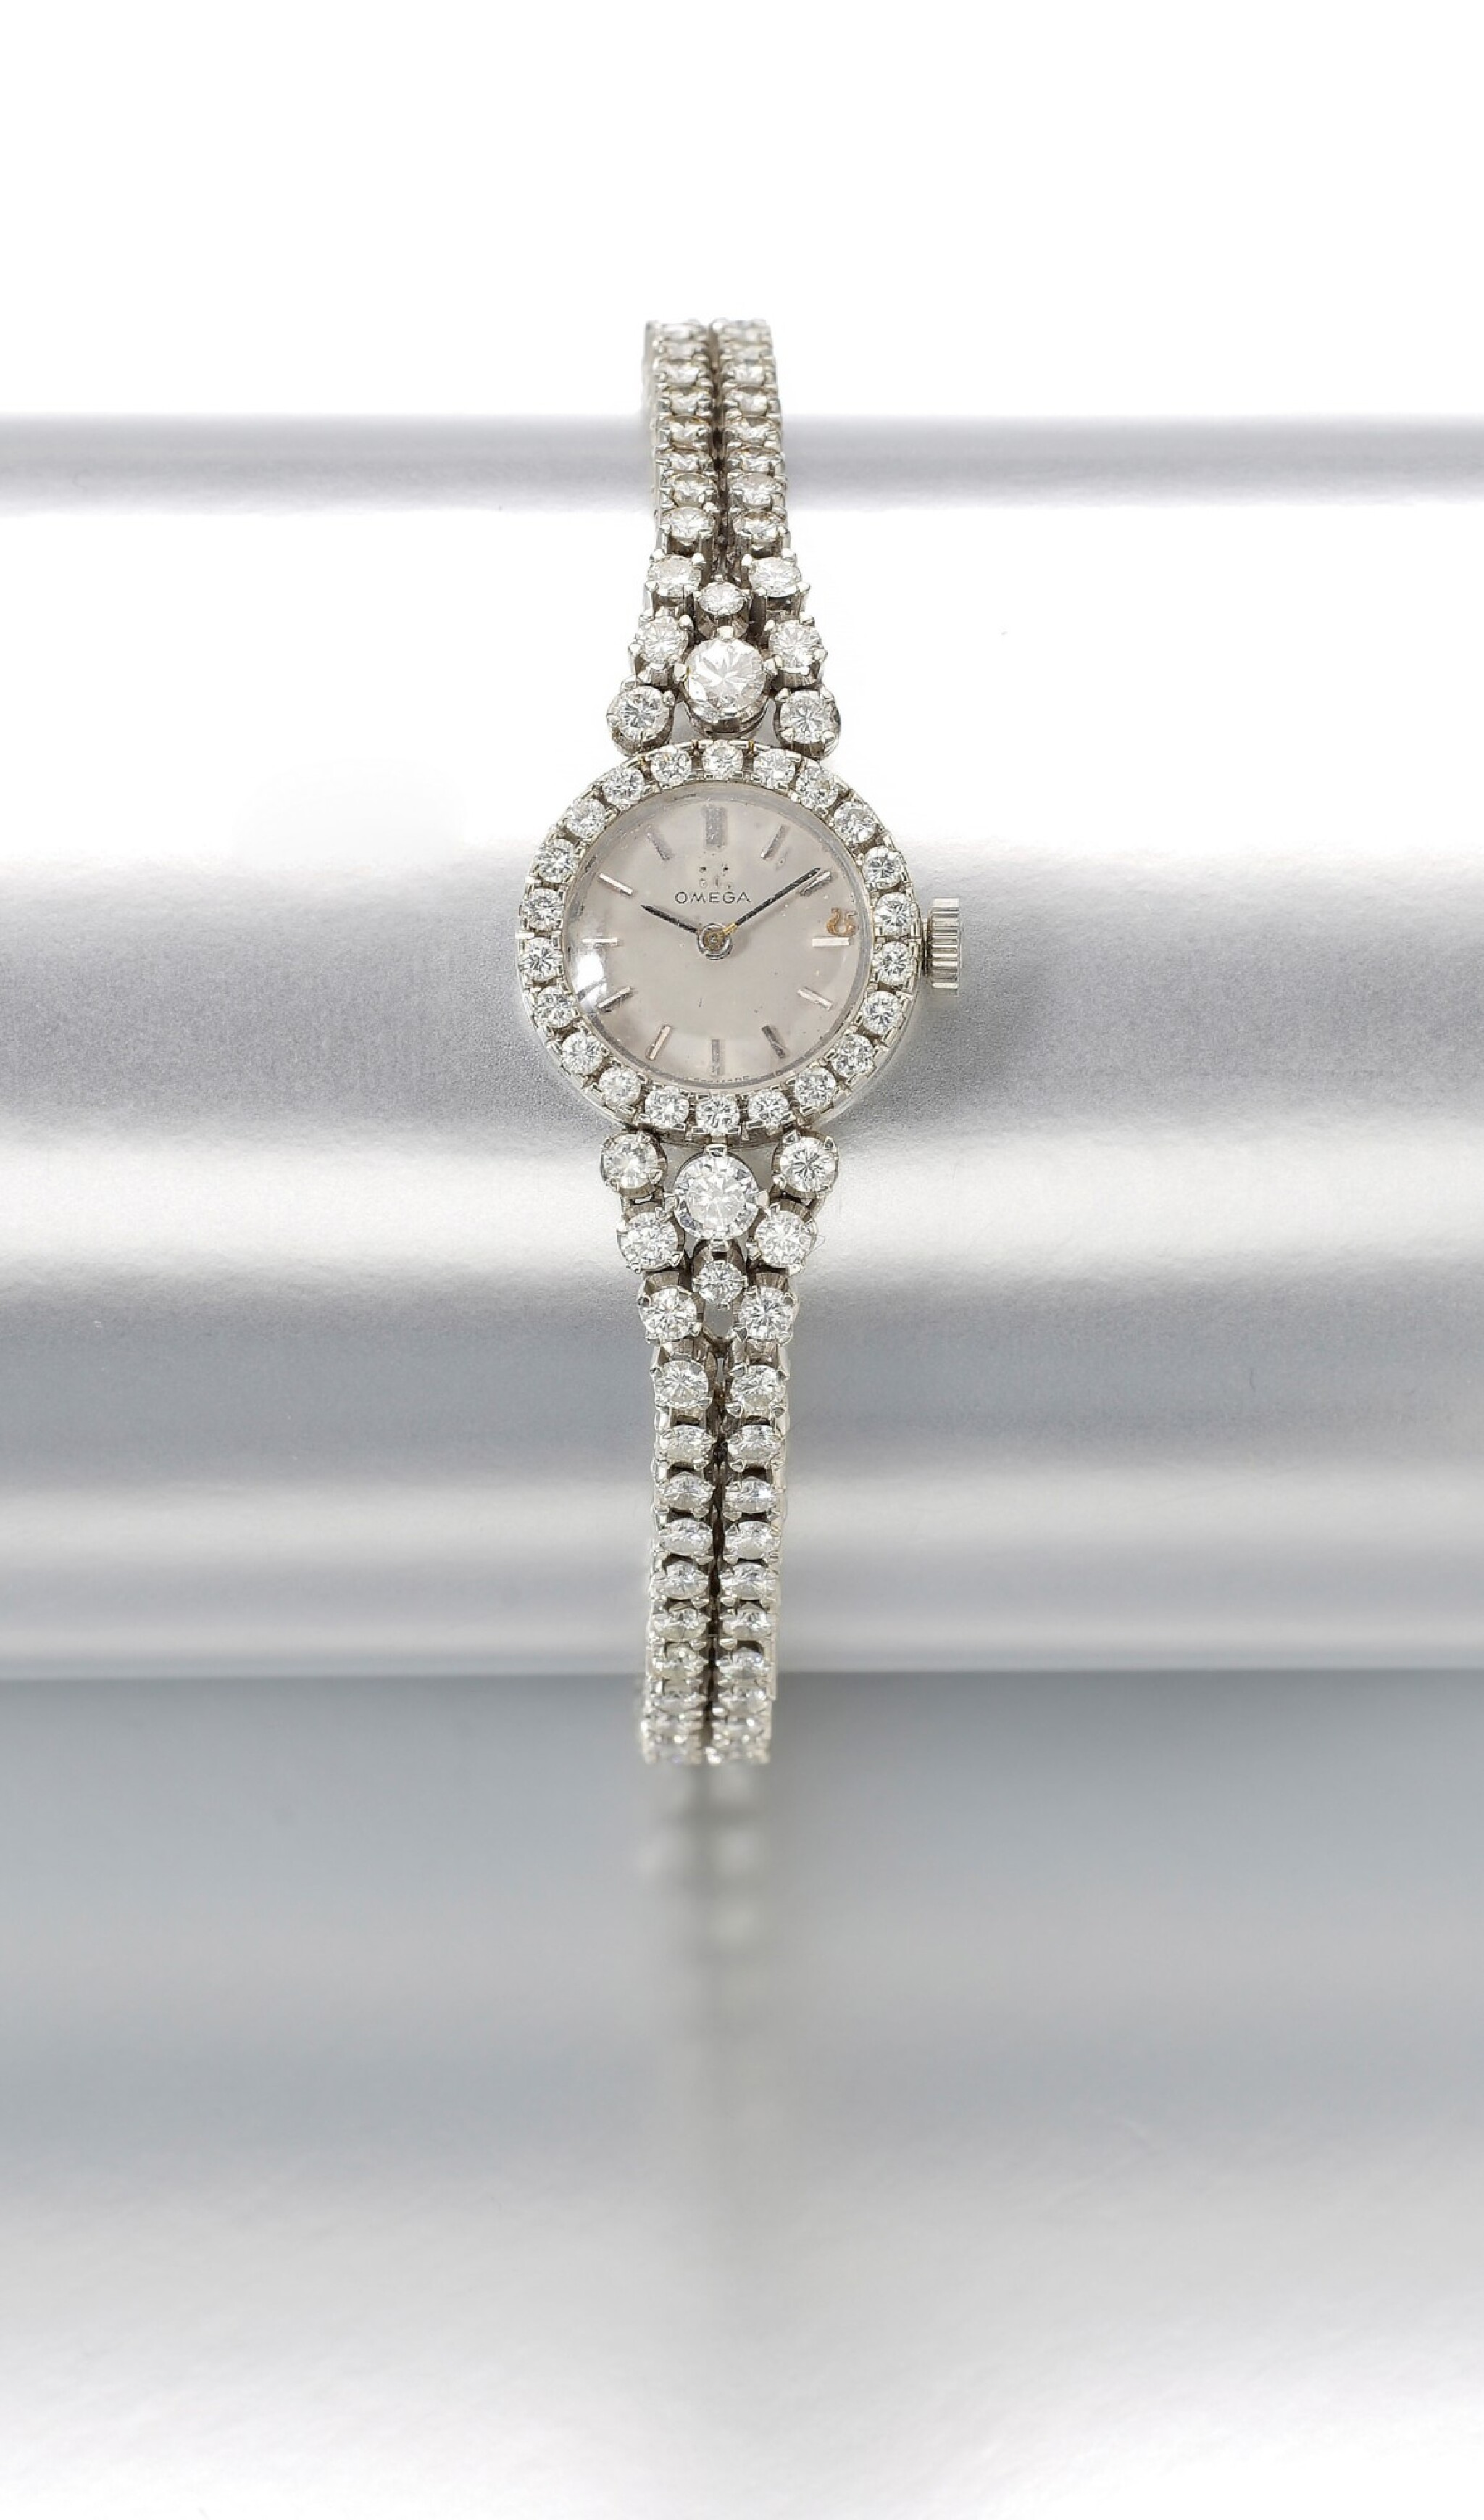 View full screen - View 1 of Lot 24. LADY'S DIAMOND WRISTWATCH | OMEGA,  1960s.